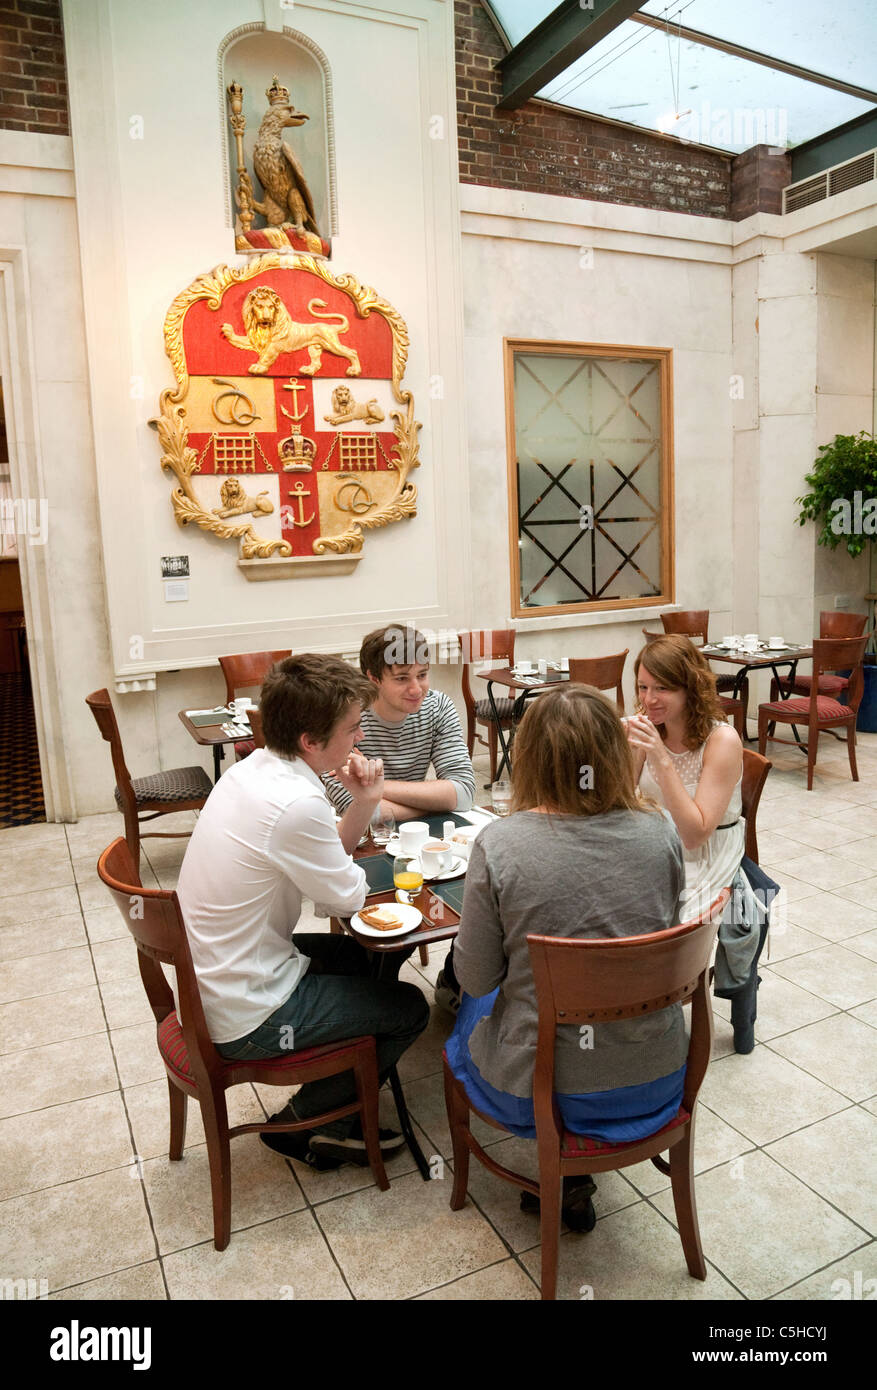 Guests having breakfast at the Royal College of Surgeons, Lincolns Inn Fields, london UK - Stock Image